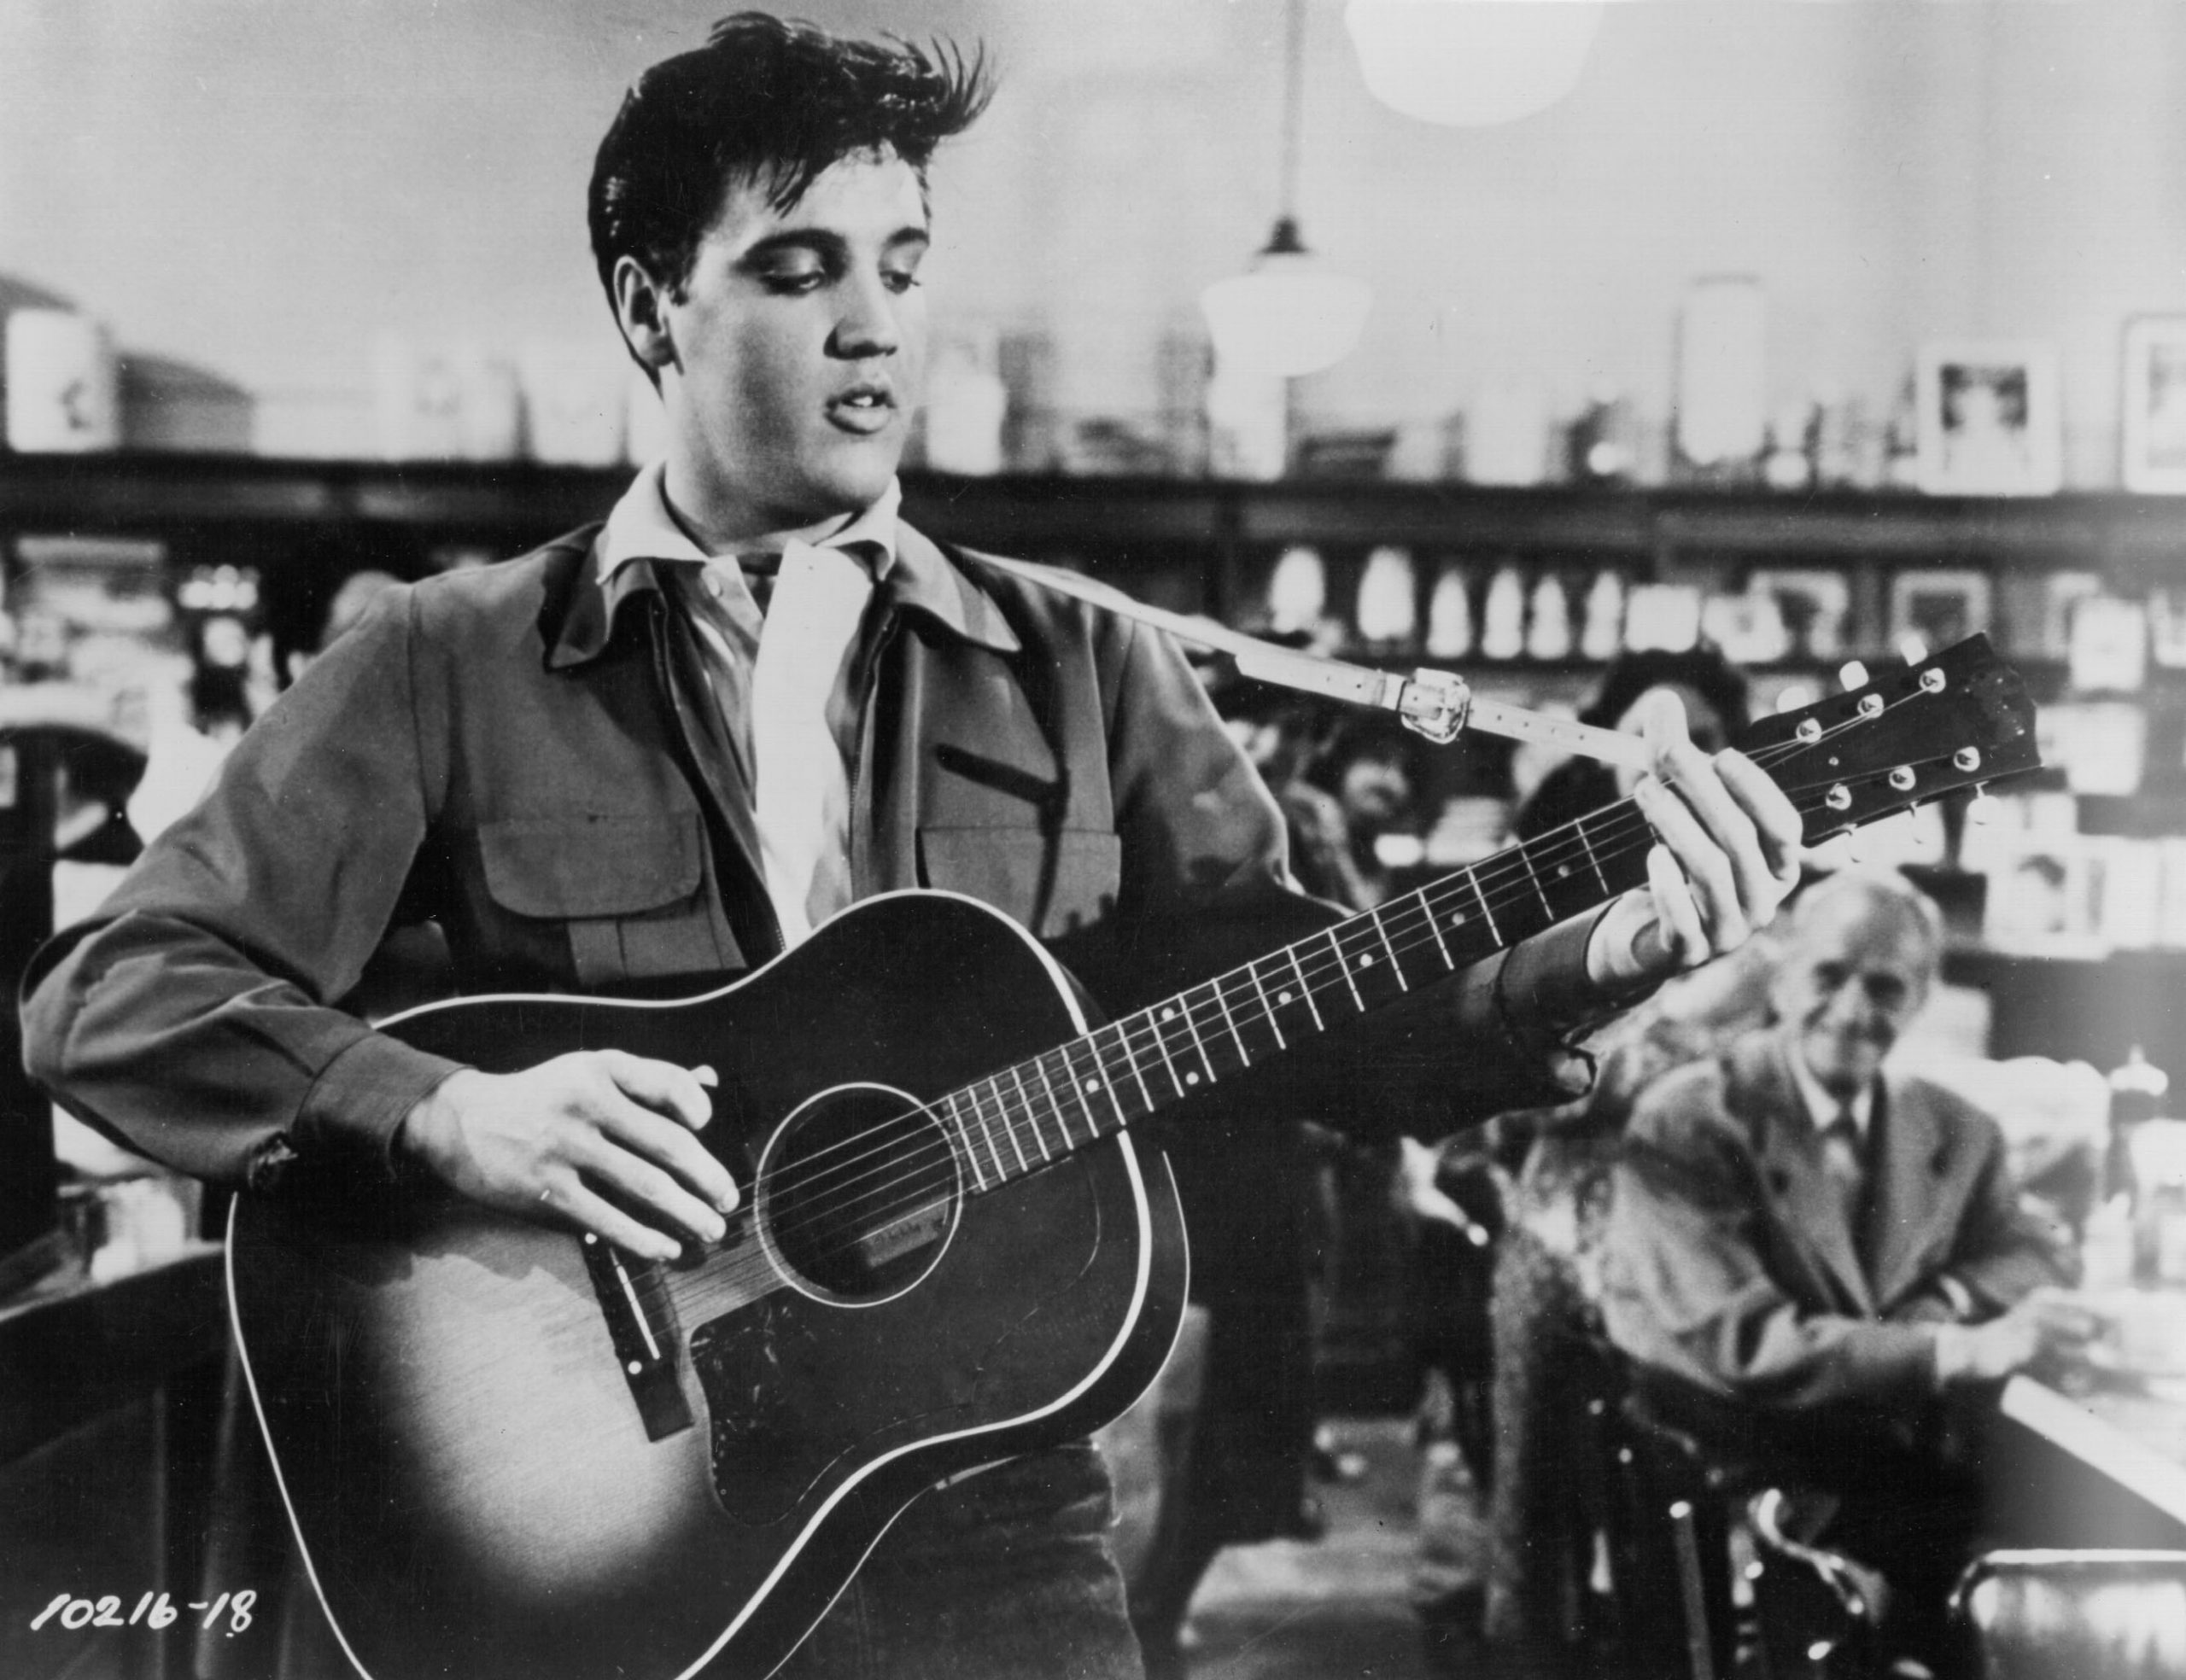 Elvis Presley: How the Writer of the Last Song He Released in His Lifetime Reacted to His Death